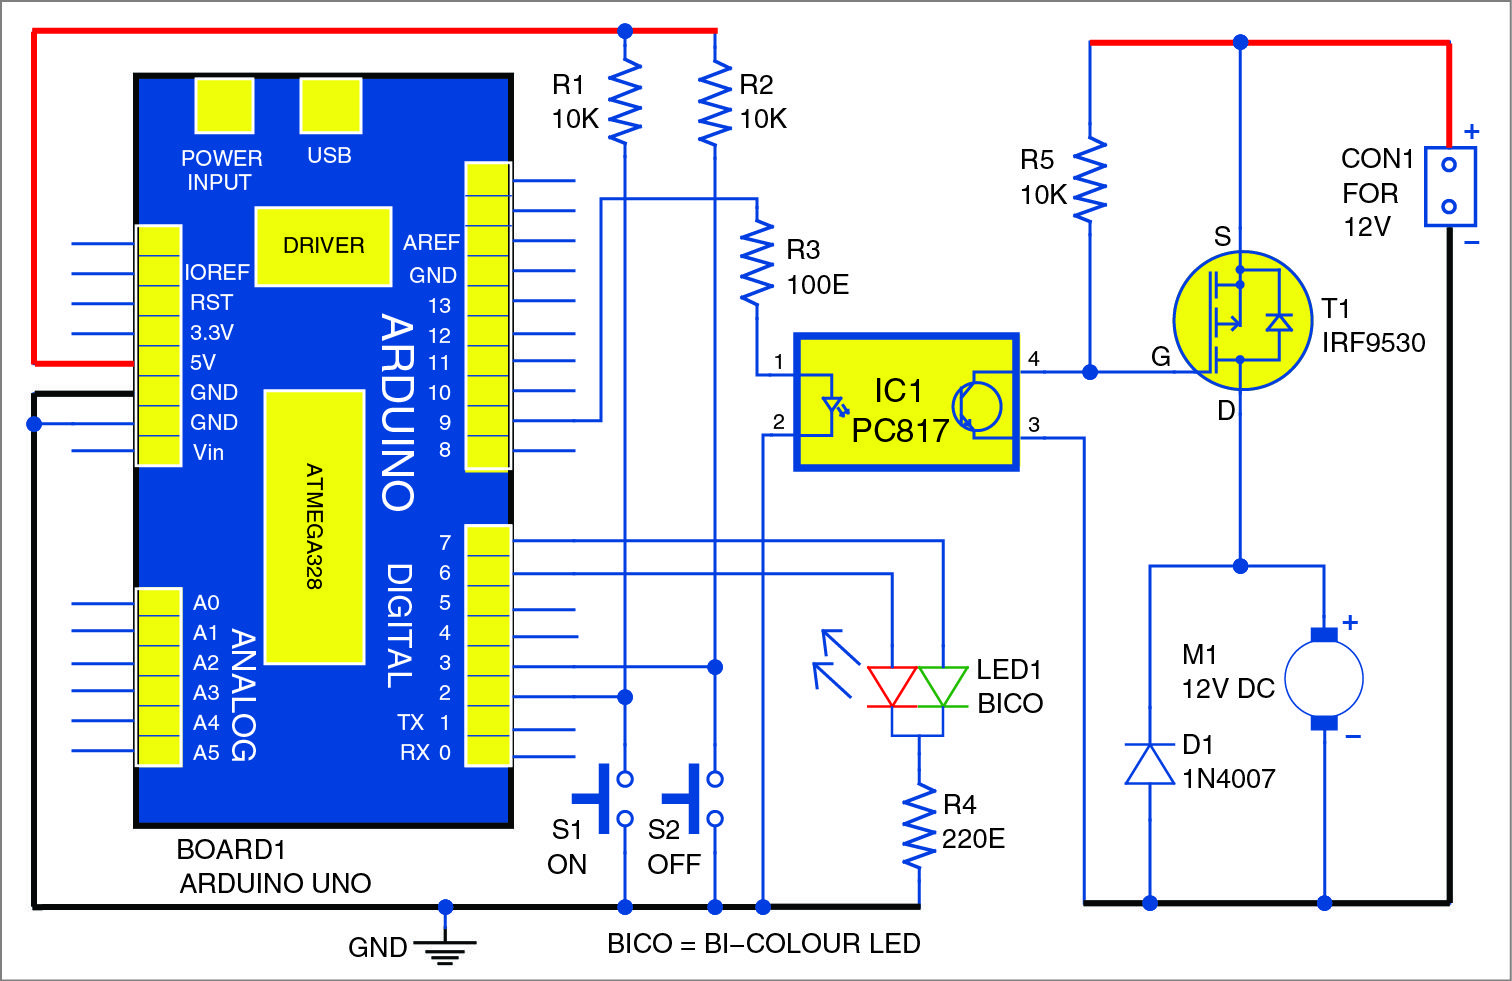 Dc Motor Starter Using Arduino Uno Controllers Pinterest 200m Fm Transmitter Electronic Circuits And Diagramelectronics Here We Describe An This Circuit Controls Both Soft Start Stop Timings Through Pwm